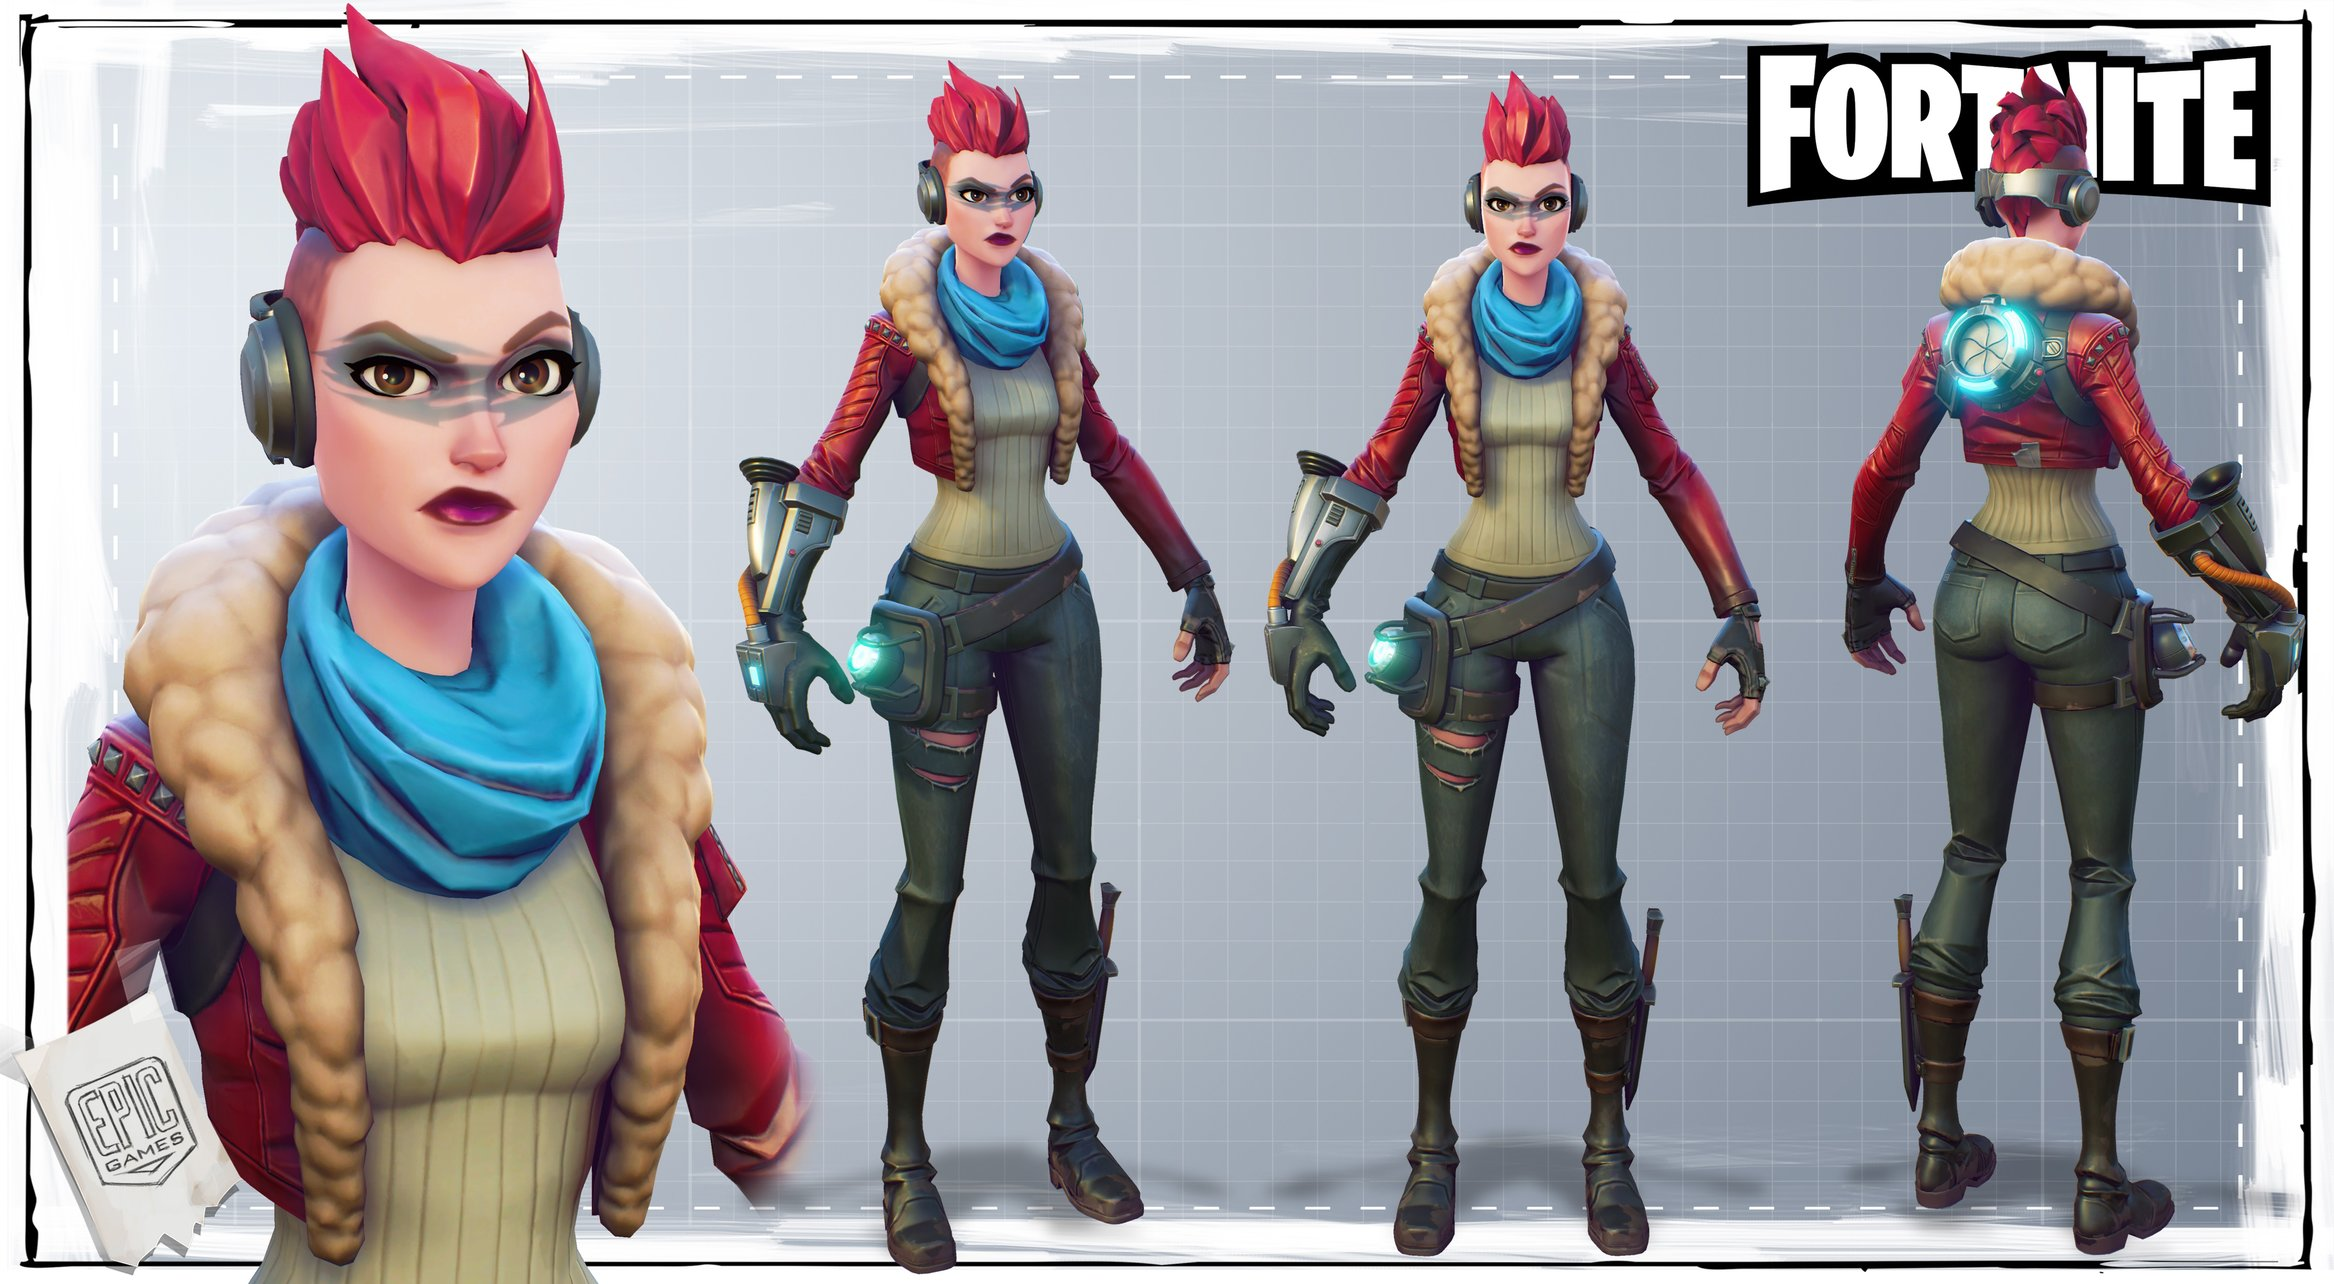 new here maps offline with Fortnite Character Art Dump on Fortnite Character Art Dump besides Save Maps For Offline View In Google Maps Version 7 Android additionally Home Depot Store Locations Map besides 69058 additionally Fortnite Character Art Dump.